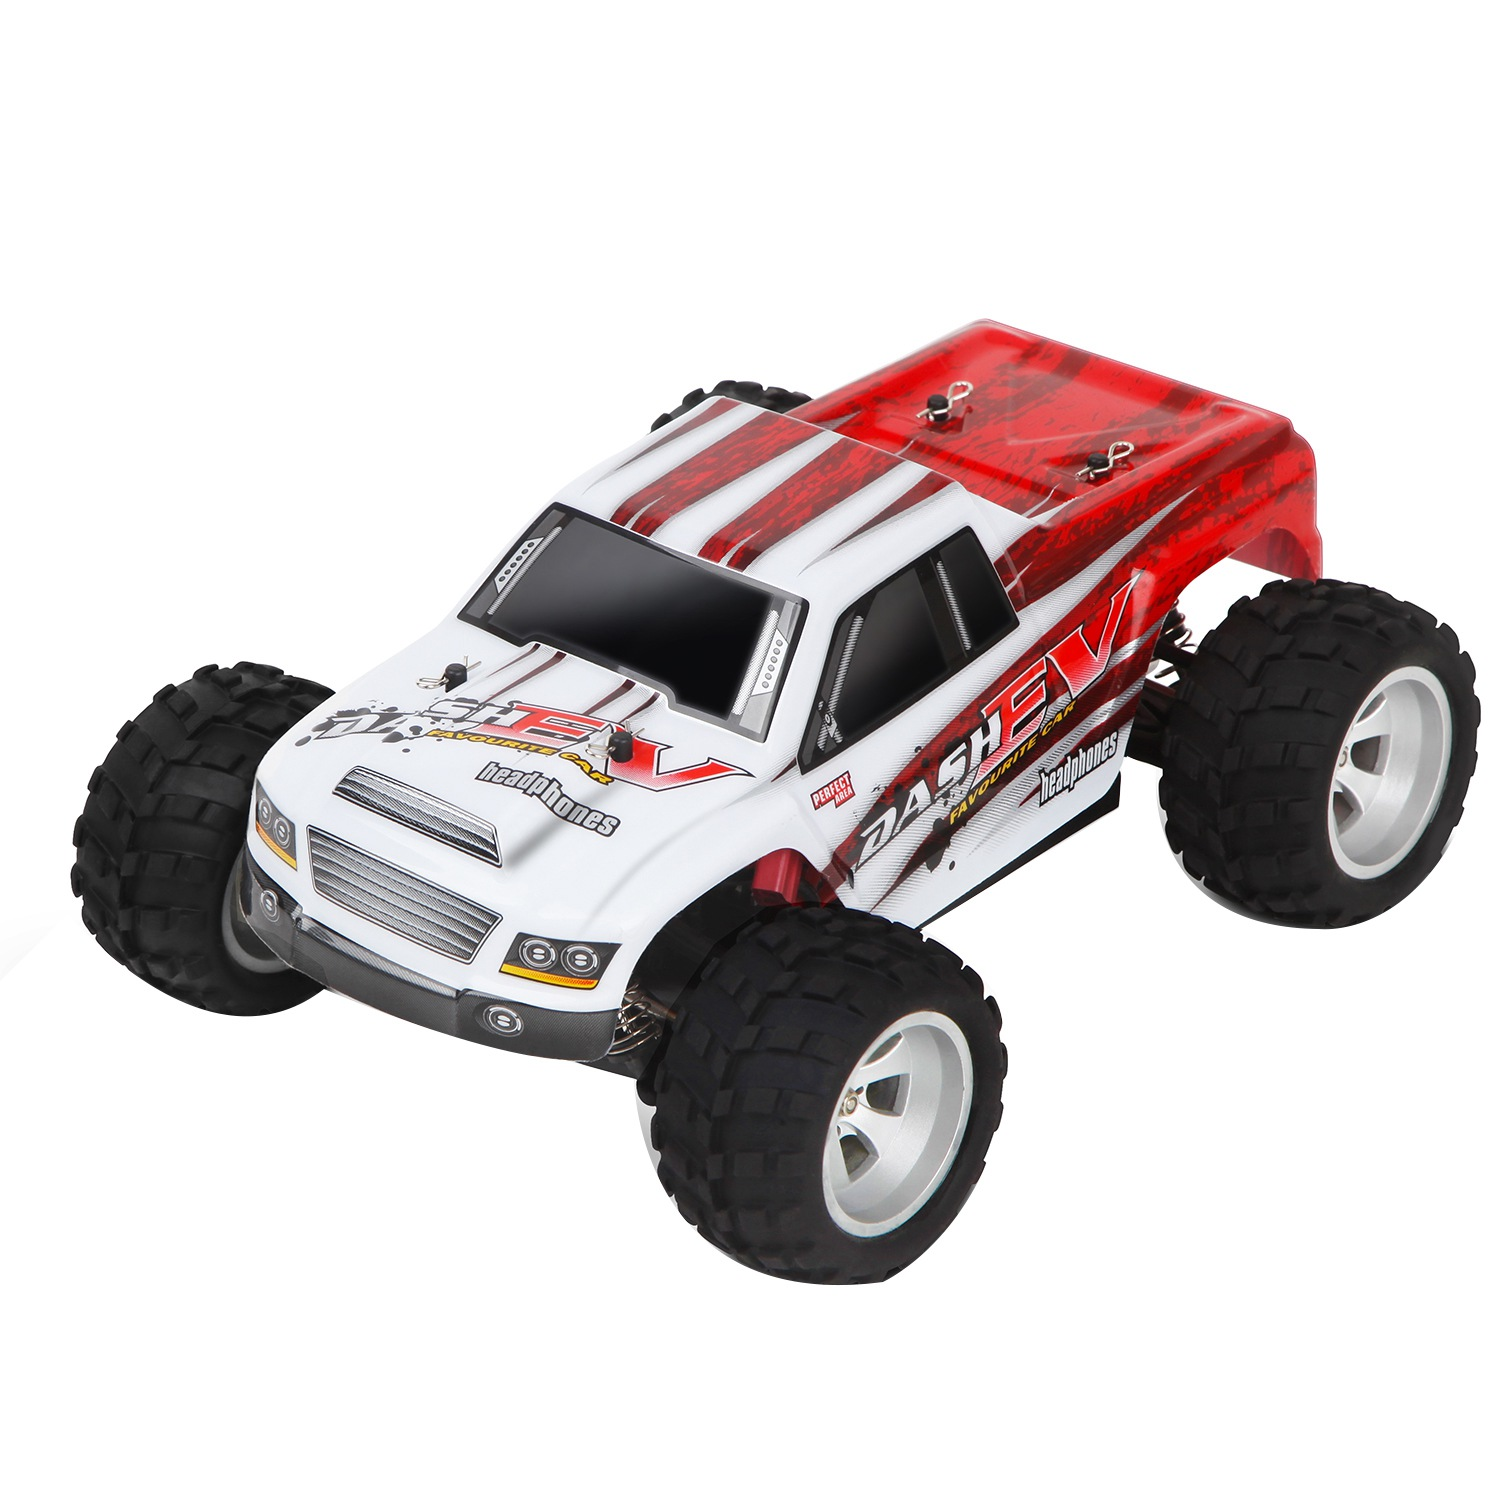 Wltoys A979-B Four-Wheel Drive Drift Racing 2.4G Off-Road Remote Control Car Toy 1:18 Full-Scale High-Speed Remote Control CarWltoys A979-B Four-Wheel Drive Drift Racing 2.4G Off-Road Remote Control Car Toy 1:18 Full-Scale High-Speed Remote Control Car